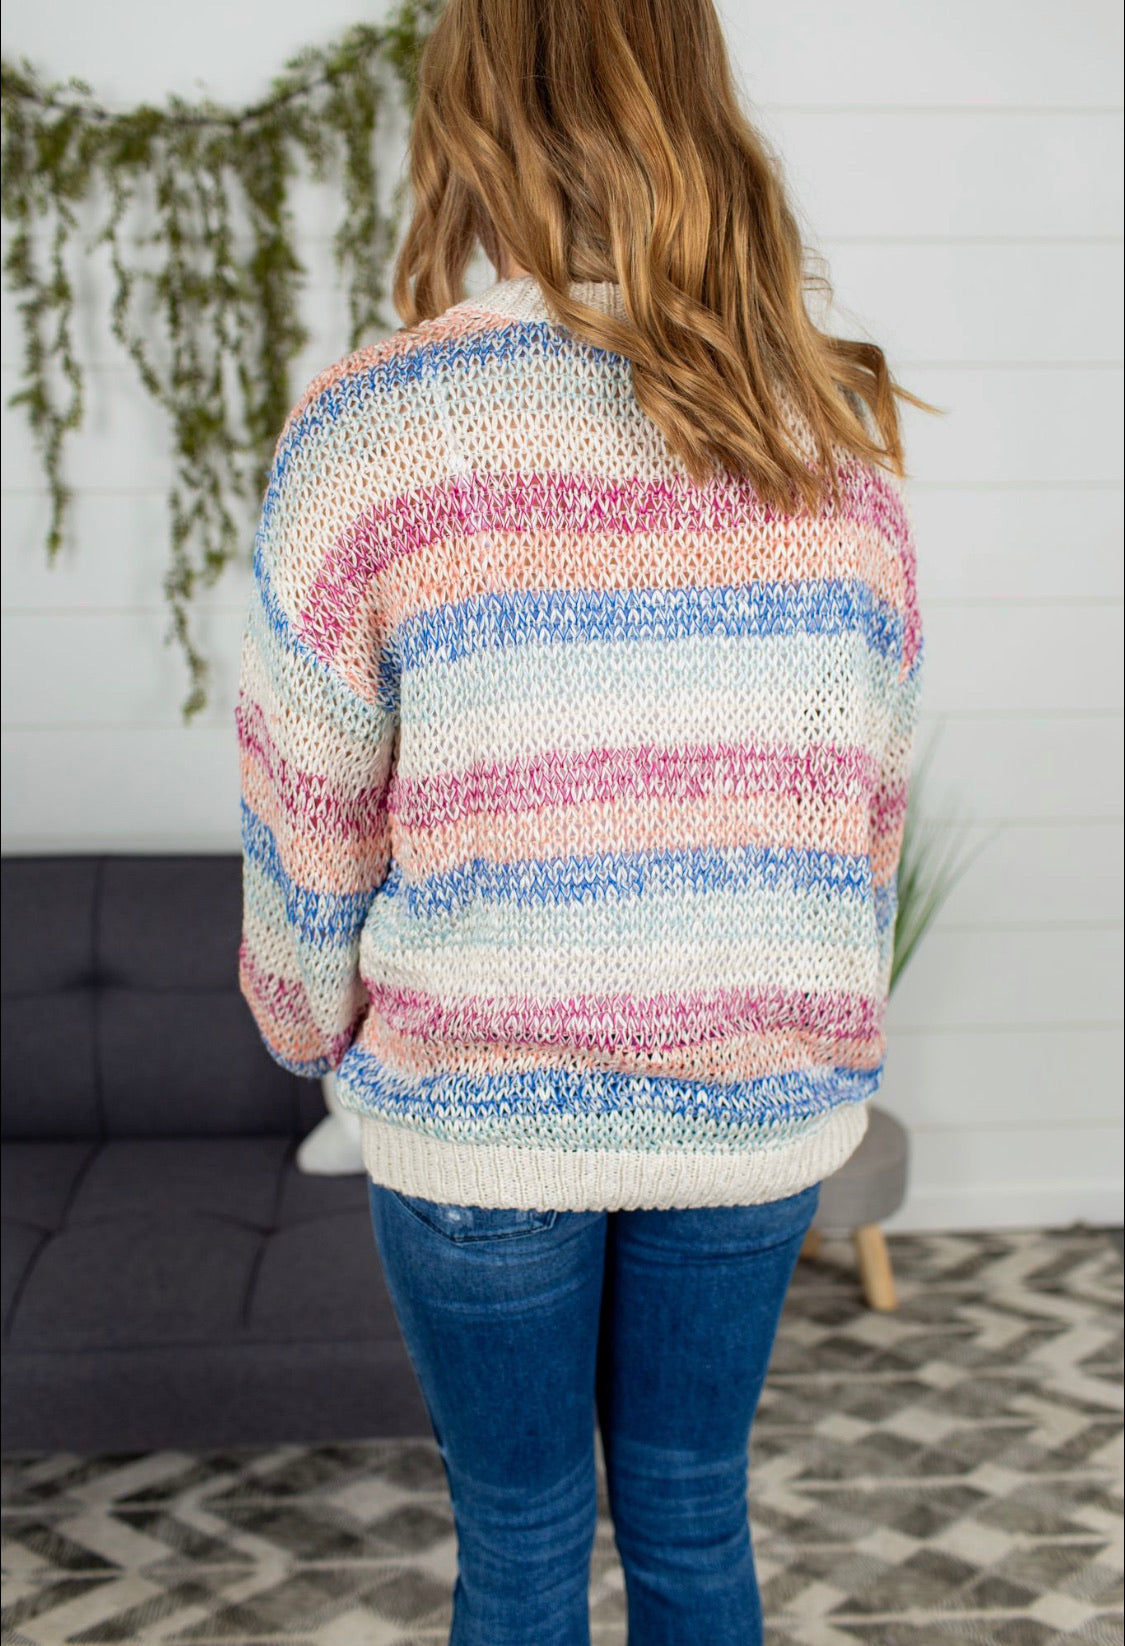 Long Sleeve Multi Color Sweater - Magenta/Blue